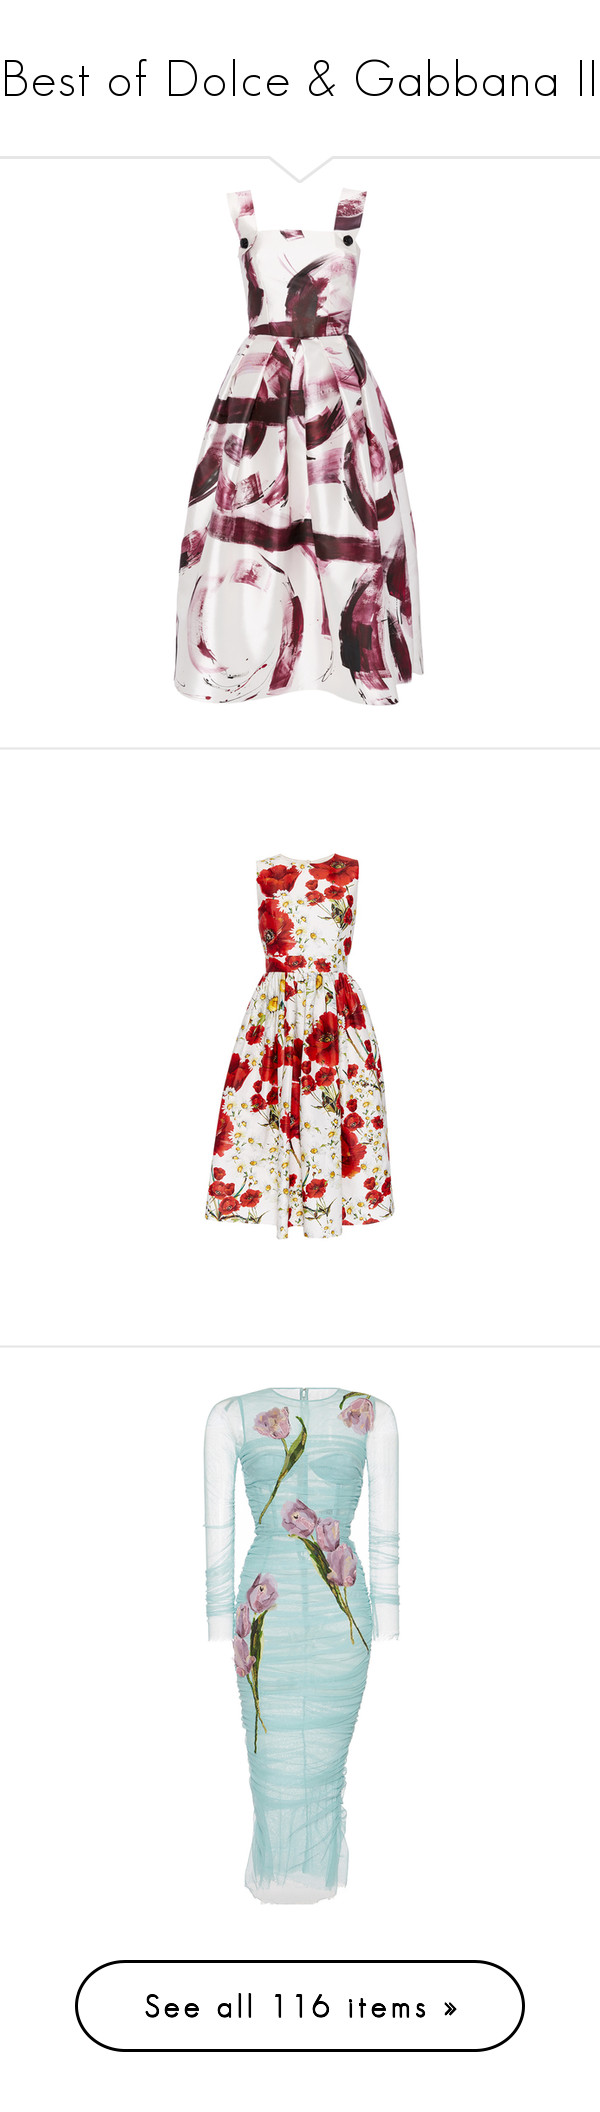 """Best of Dolce & Gabbana II"" by sakuragirl ❤ liked on Polyvore featuring dresses, dolce & gabbana, sleeveless cocktail dress, pattern dress, silk cocktail dress, sleeveless dress, white sleeveless dress, flower printed dress, white floral dress and white day dress"